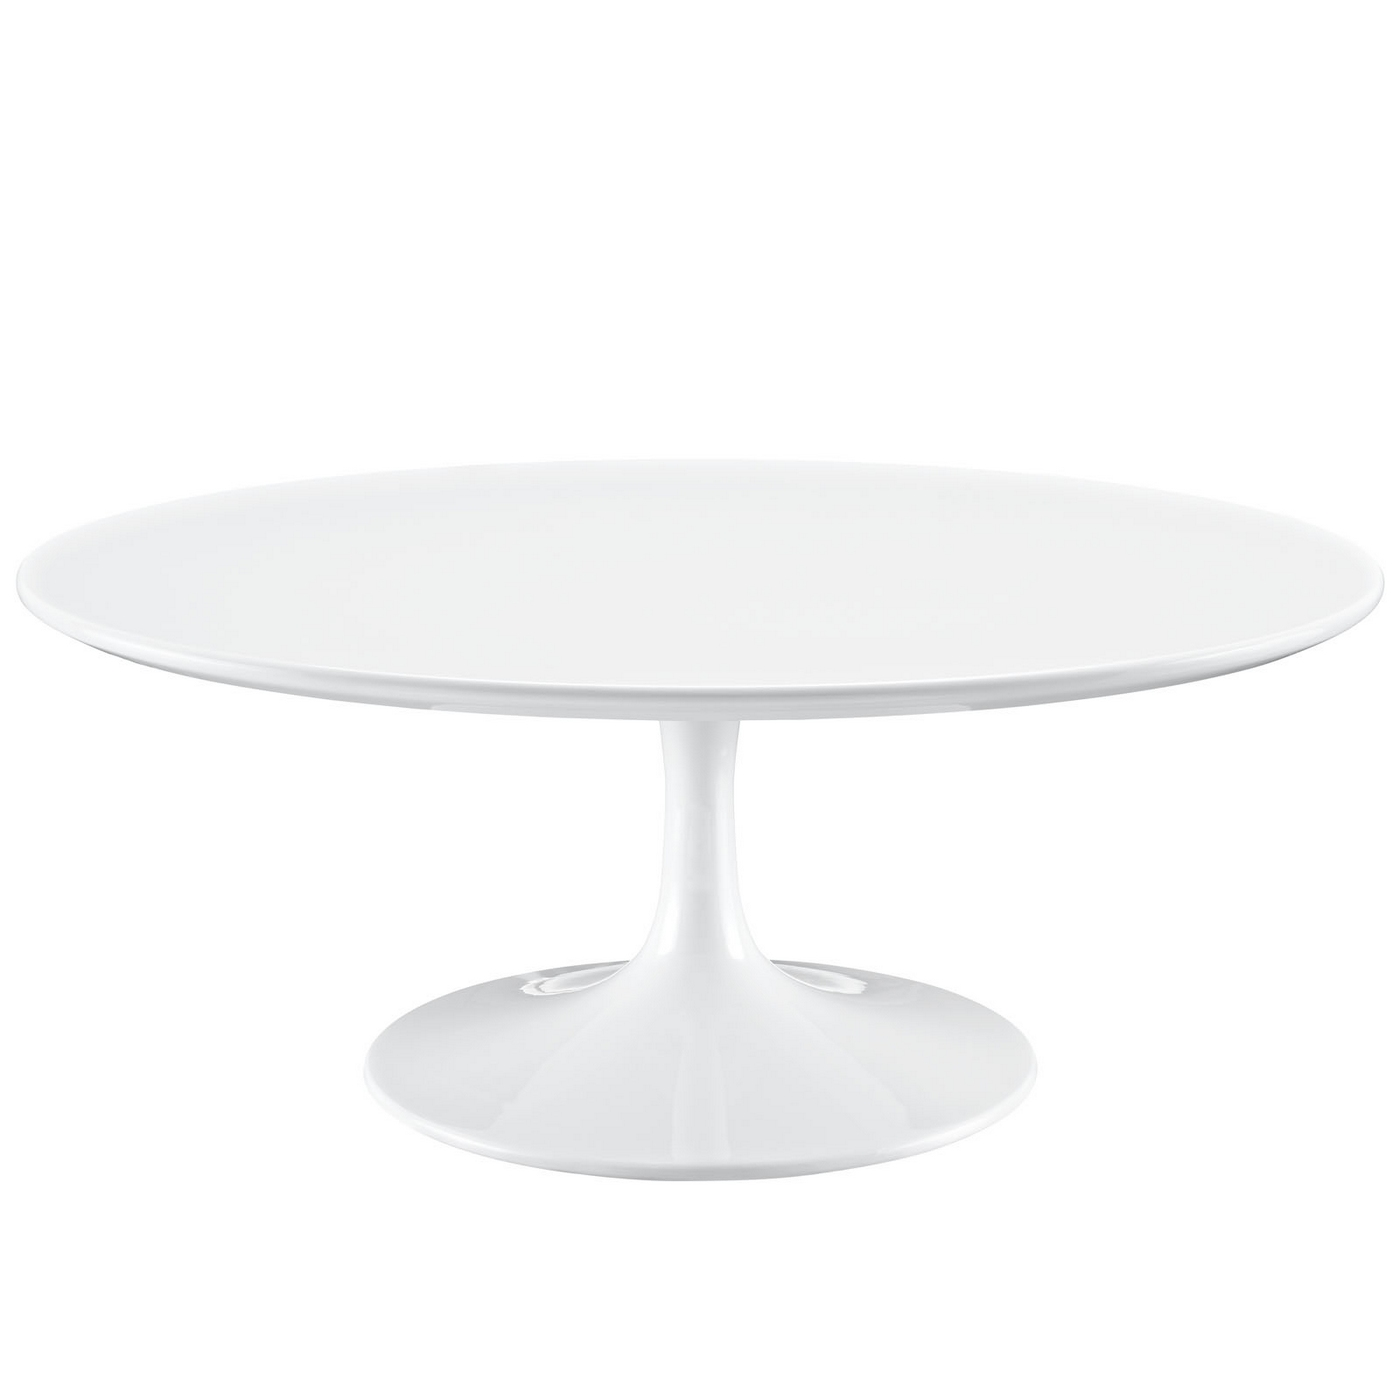 Lippa modern 40 round pedestal coffee table with lacquered finish white Round coffee table modern